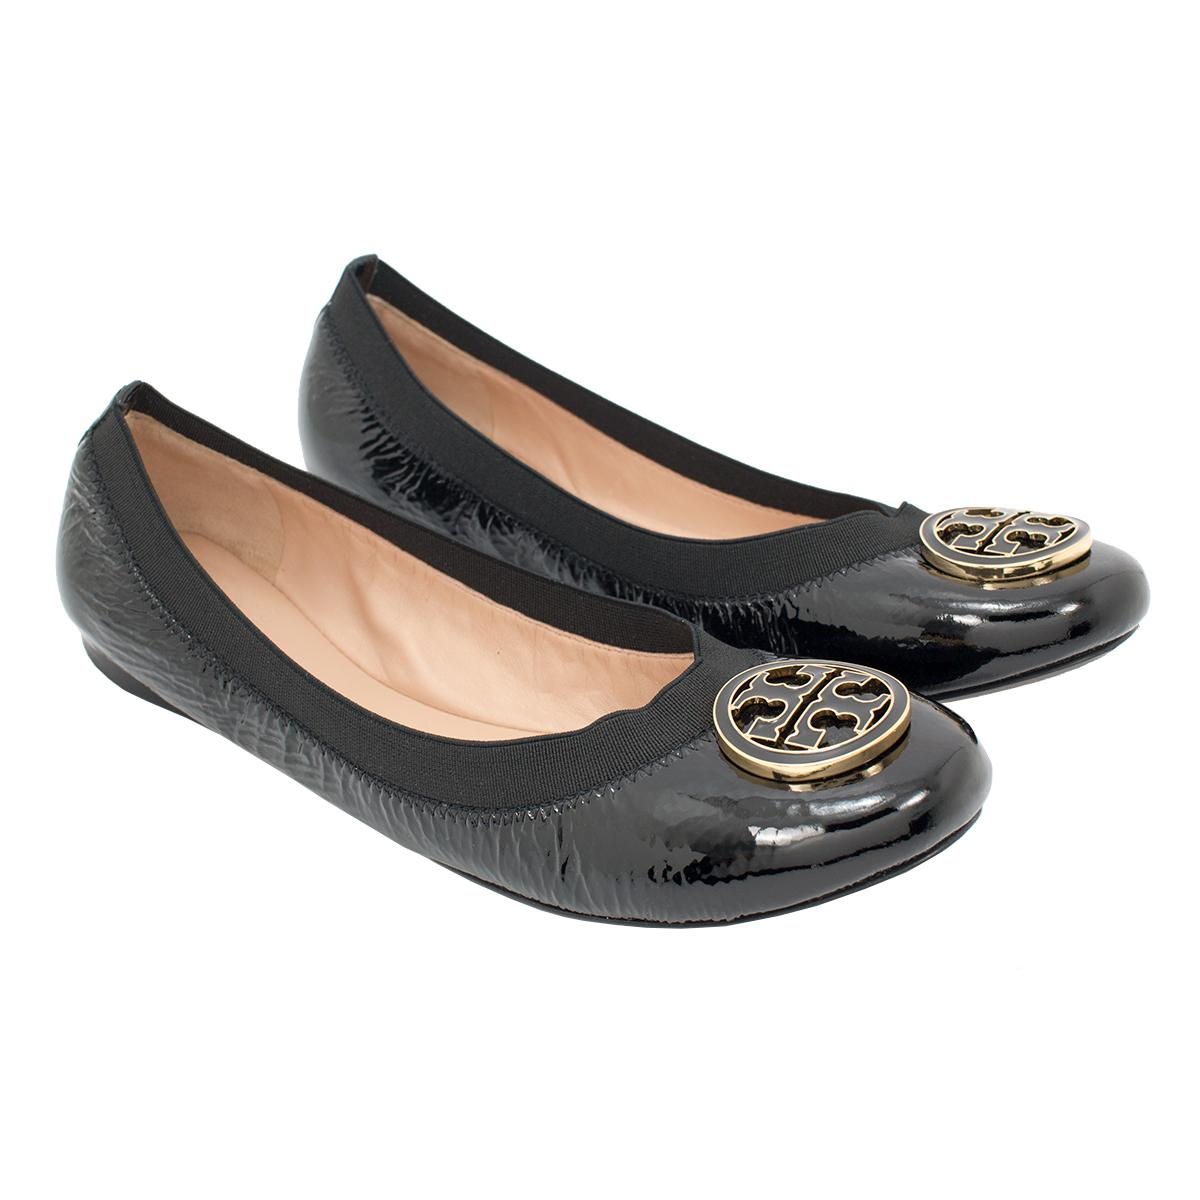 TORY BURCH LIANA BALLET FLAT. $ BUY ON STORE; CREATE SALE ALERT; Details; A feminine slipper with the shimmer of a pavé-crystal logo. The Liana Ballet Flat can add an instant festive spark to any look. TORY BURCH ELEANOR FLAT $ BUY AT TORY BURCH. TORY BURCH FLEMING BELT BAG $ BUY AT TORY BURCH. TORY BURCH GREER MINI.